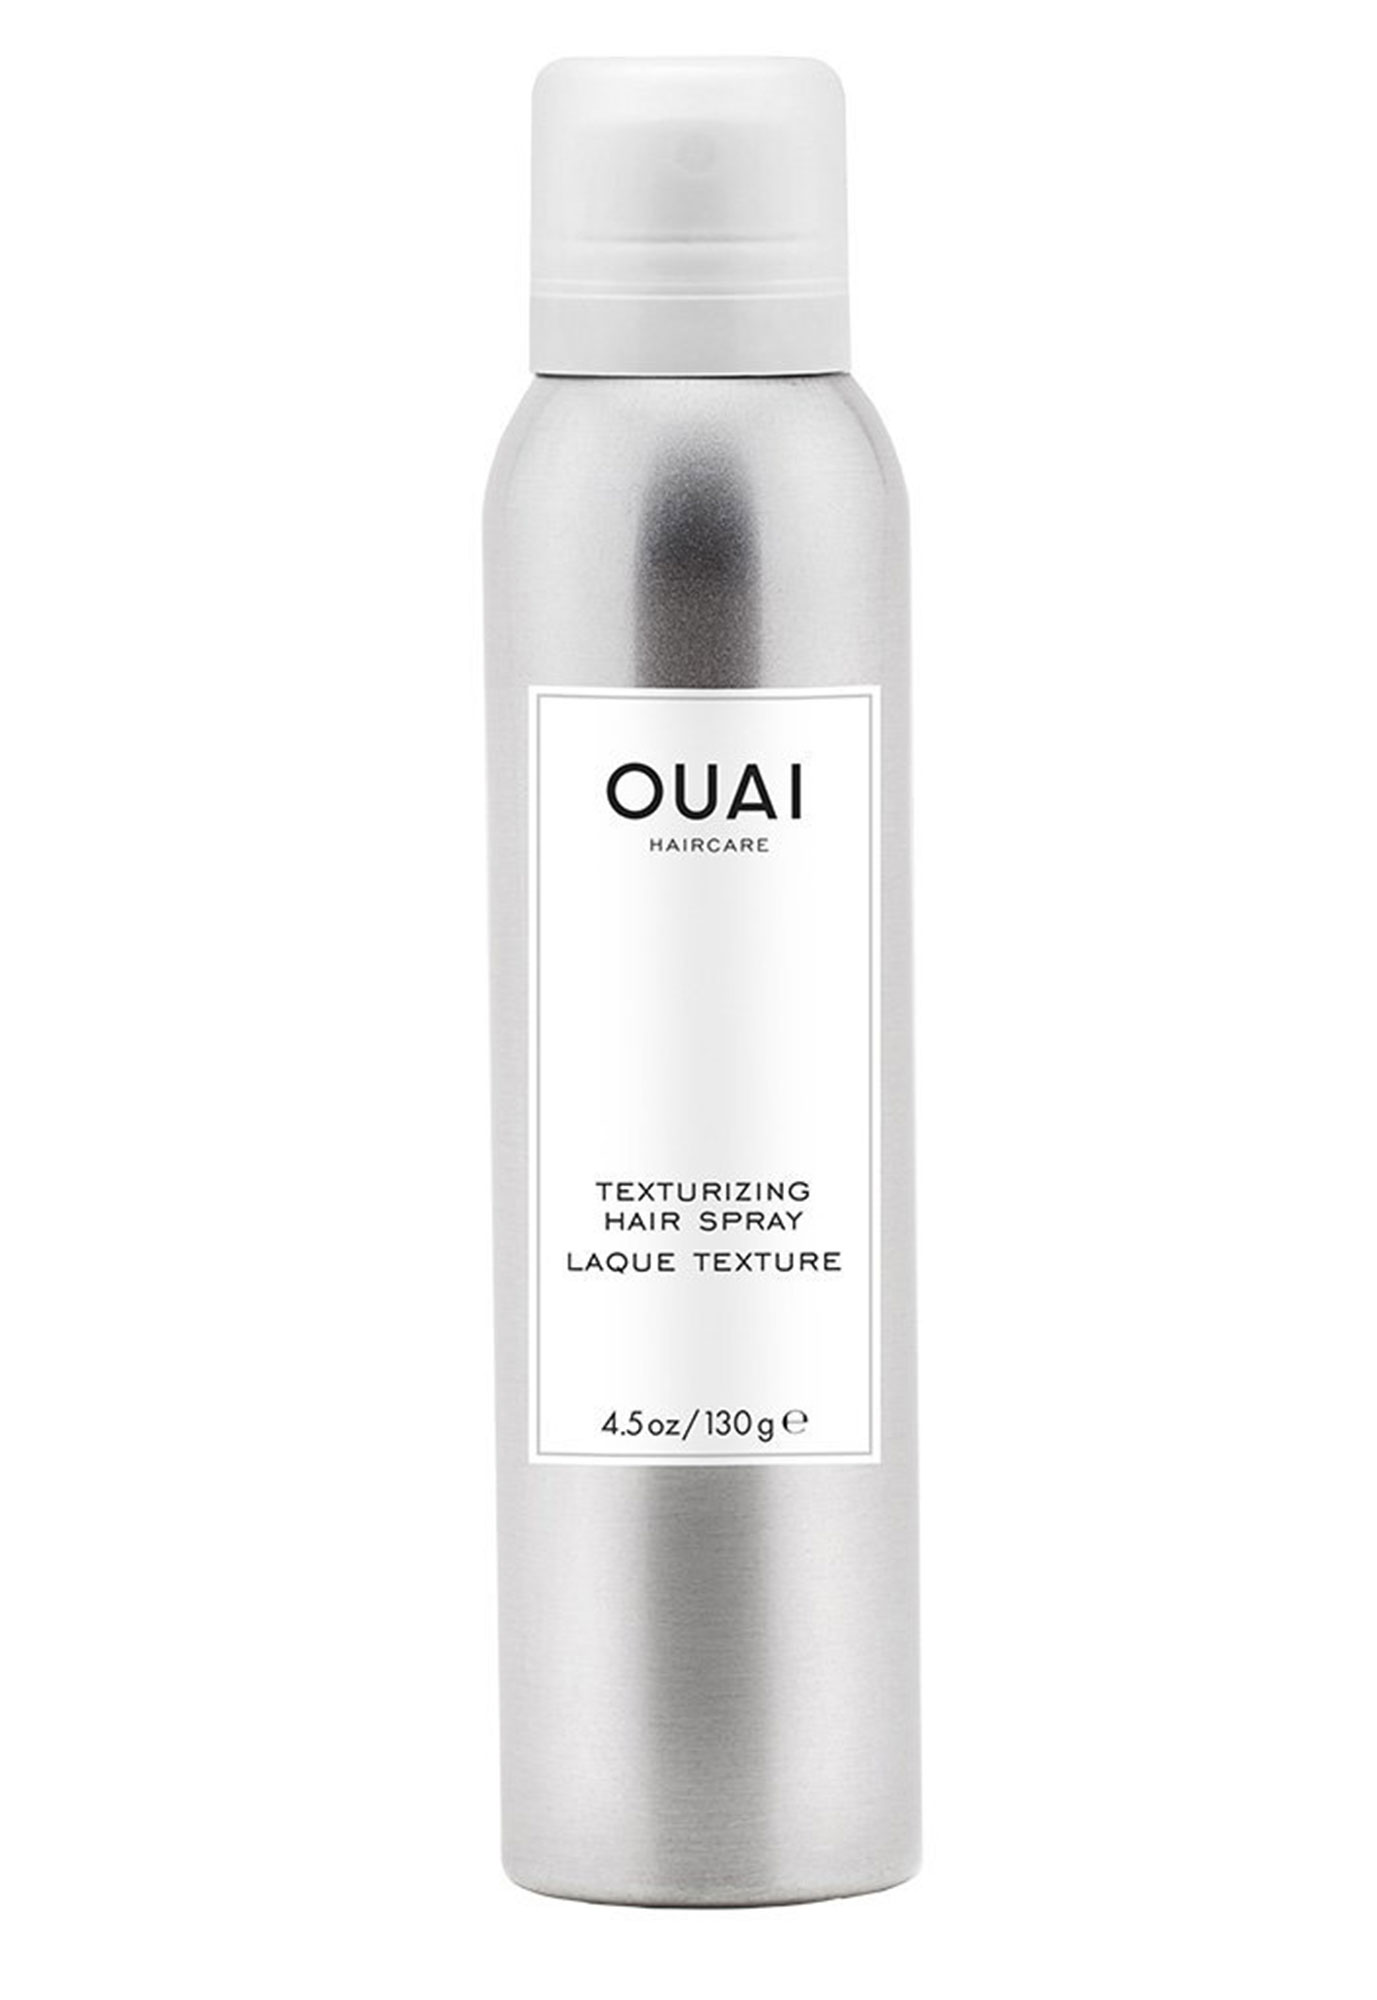 10 Long-Wearing Beauty Products to Up Your Date Night Confidence - Get the best of both worlds with this dry shampoo-hairspray-hybrid that includes volcanic minerals to absorb excess oil and add body, while also providing hold. $26, sephora.com